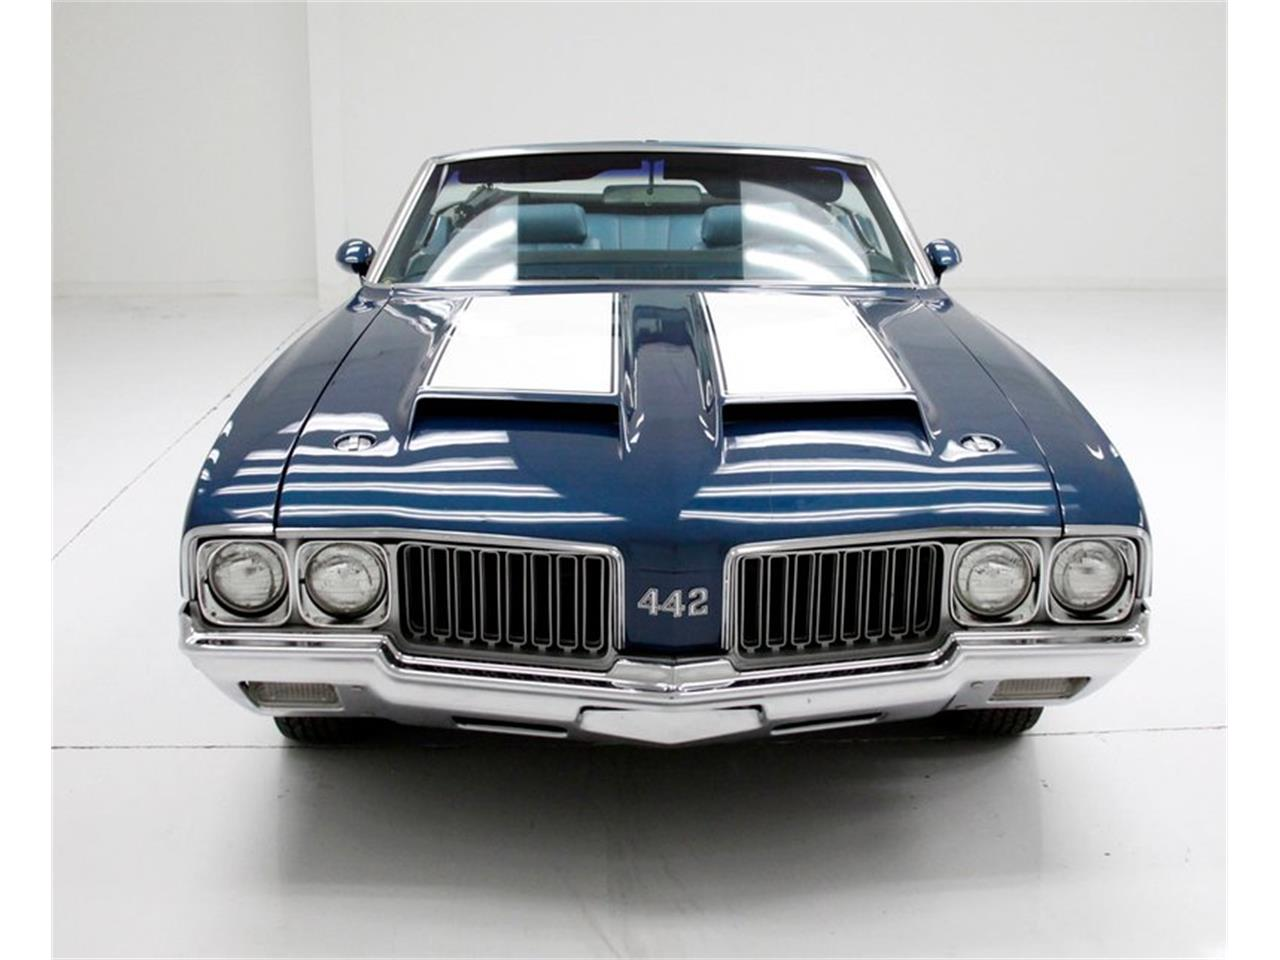 1970 Oldsmobile 442 for sale in Morgantown, PA – photo 12